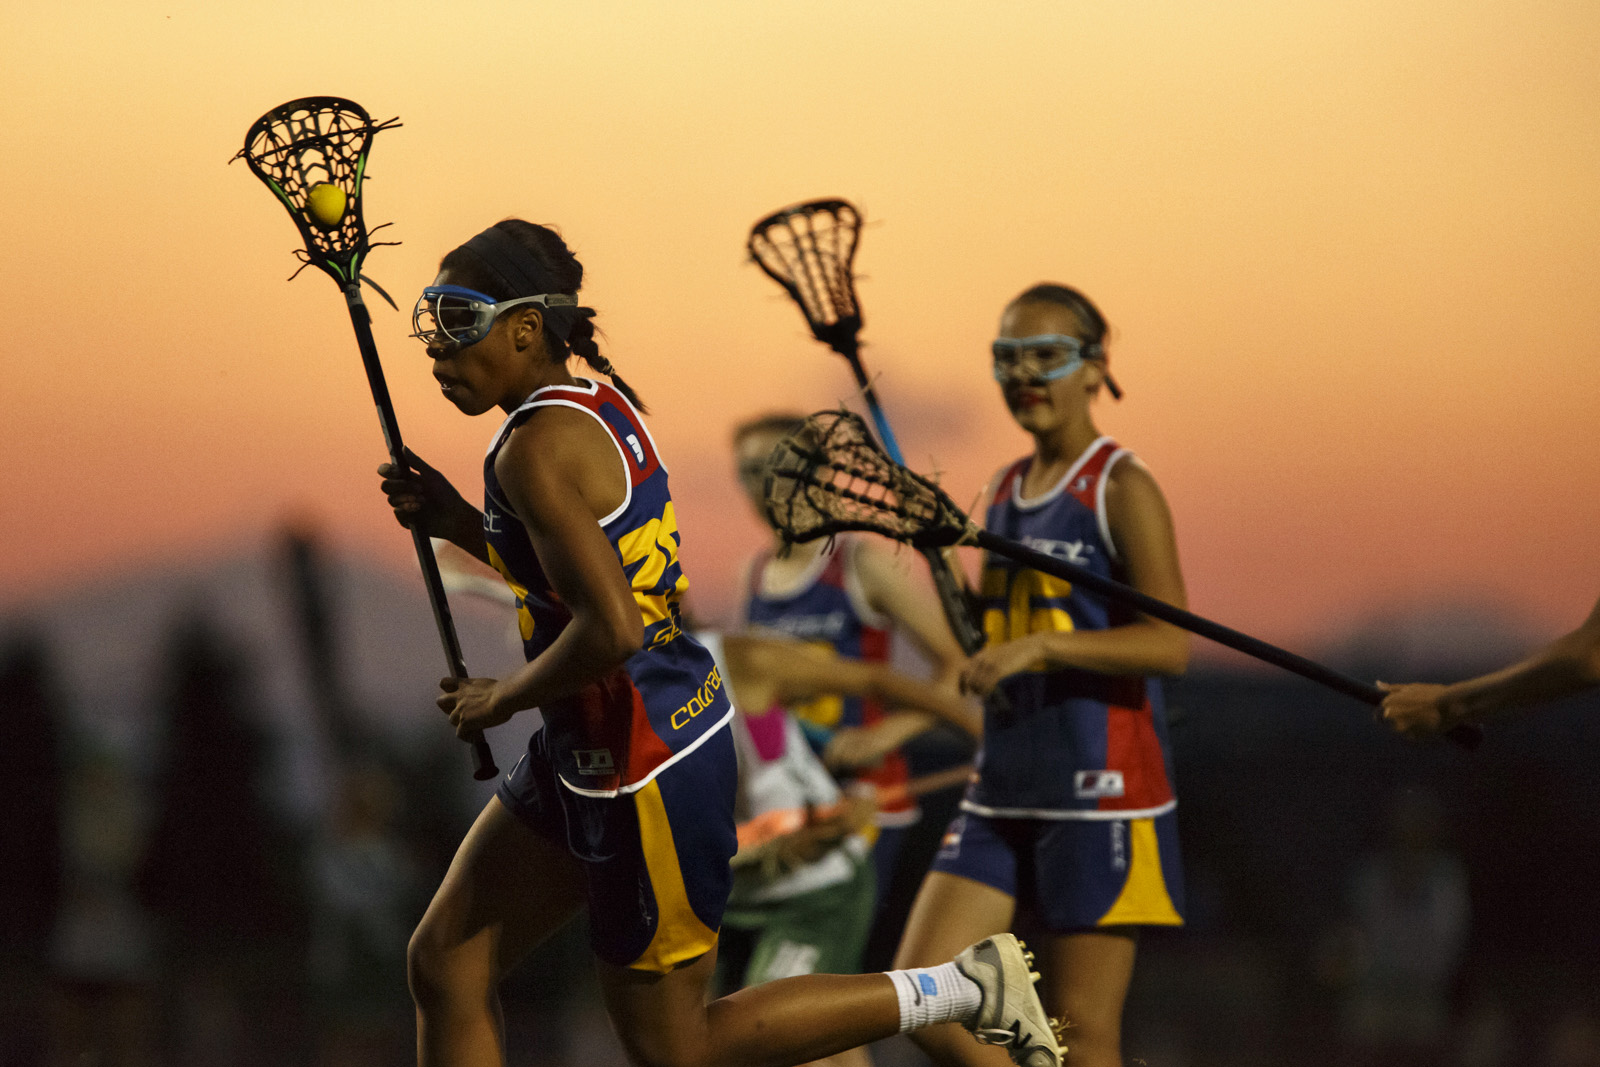 Jersey#29 - 3d Lacrosse Player Olivia Proctor at Sunset